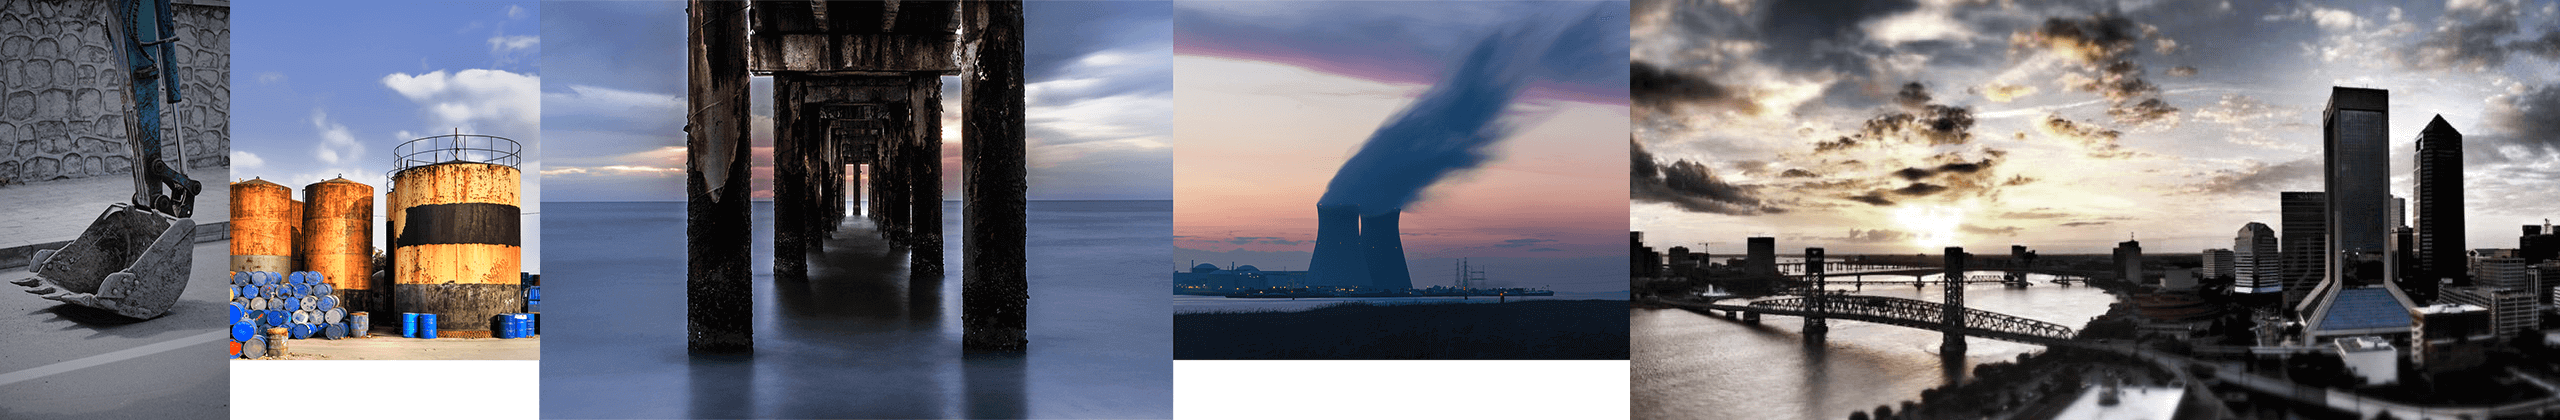 banner image with composite of environmental photos